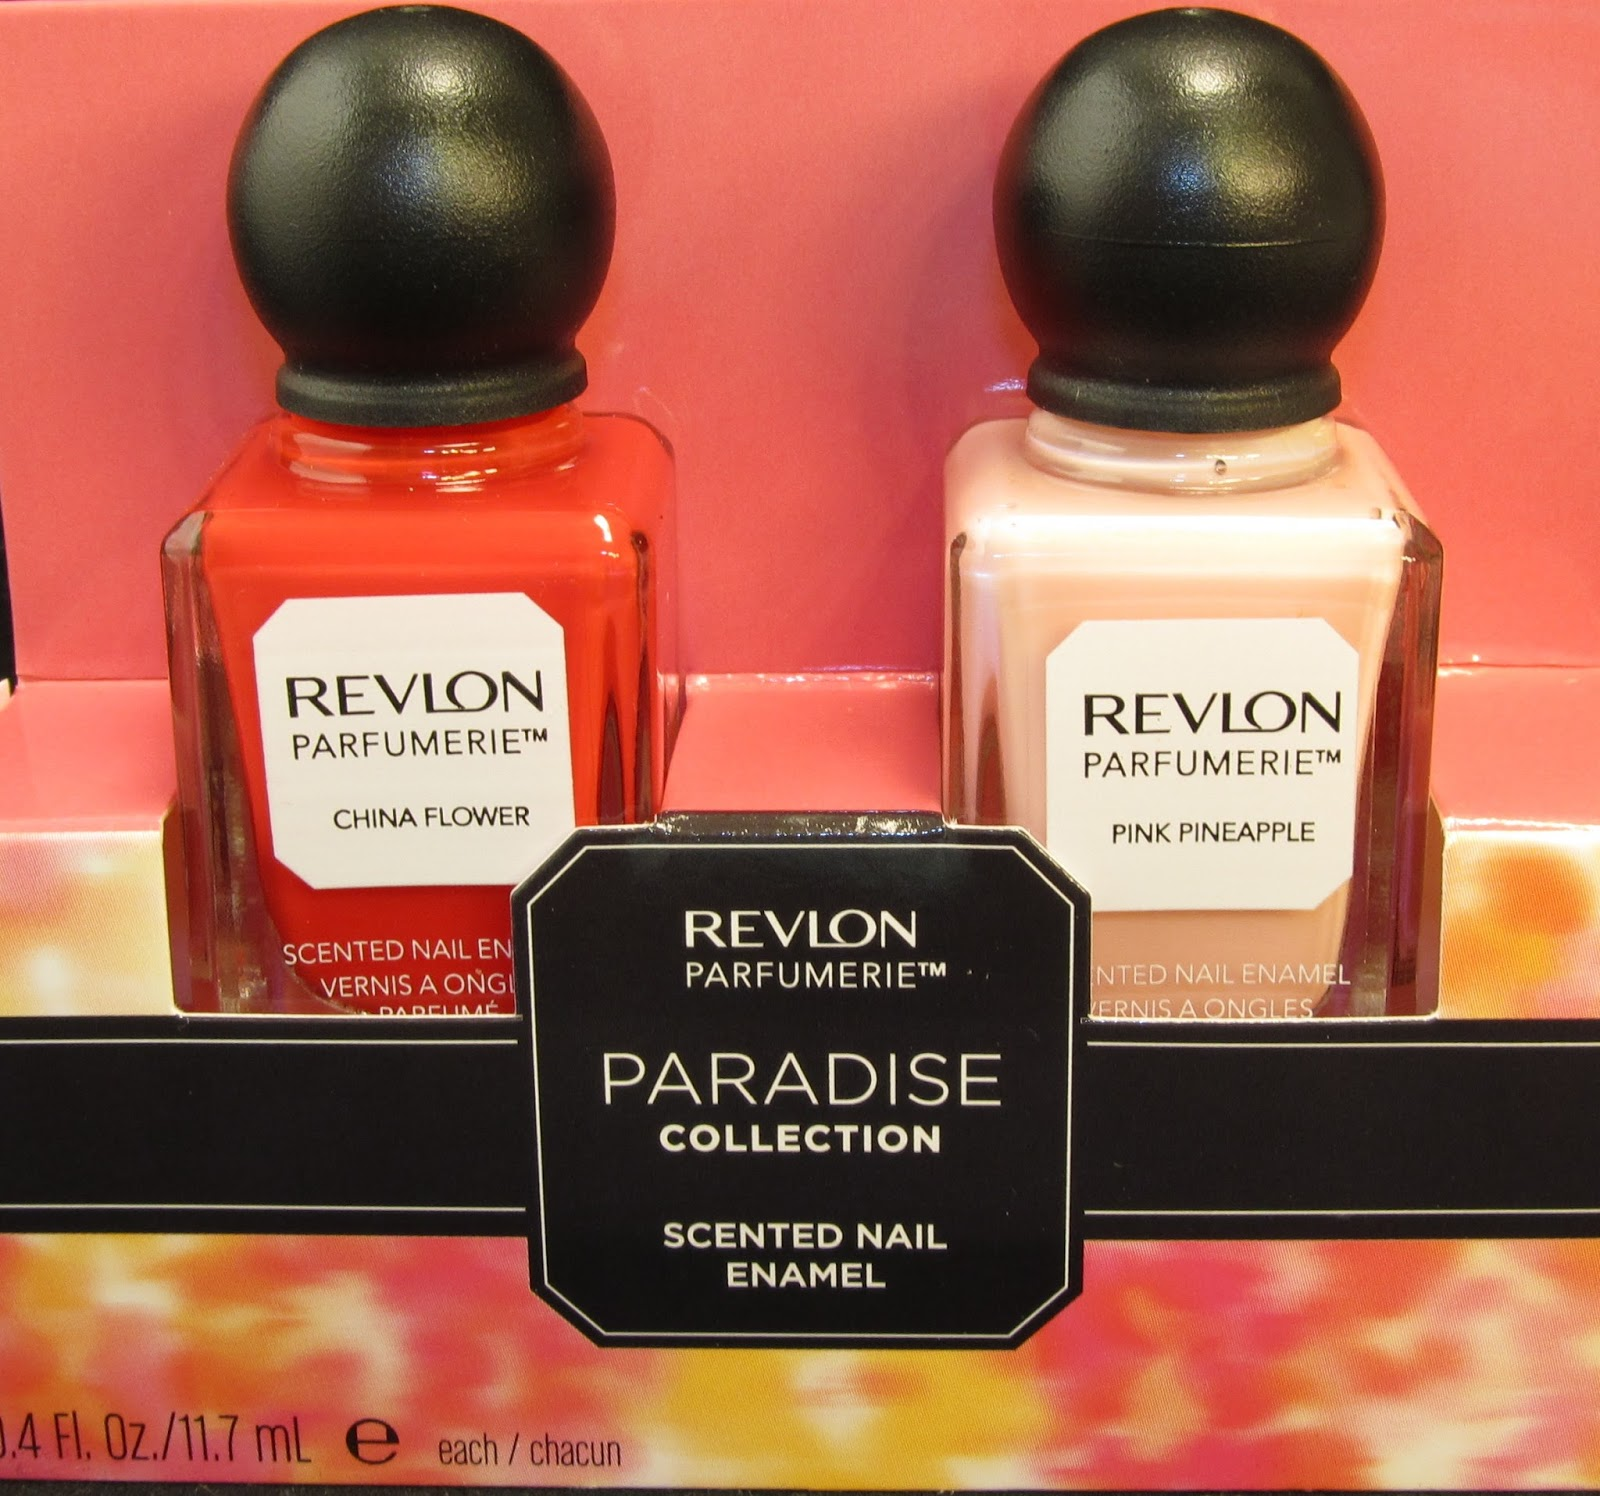 Revlon Parfumerie - China Flower & Pink Pineapple